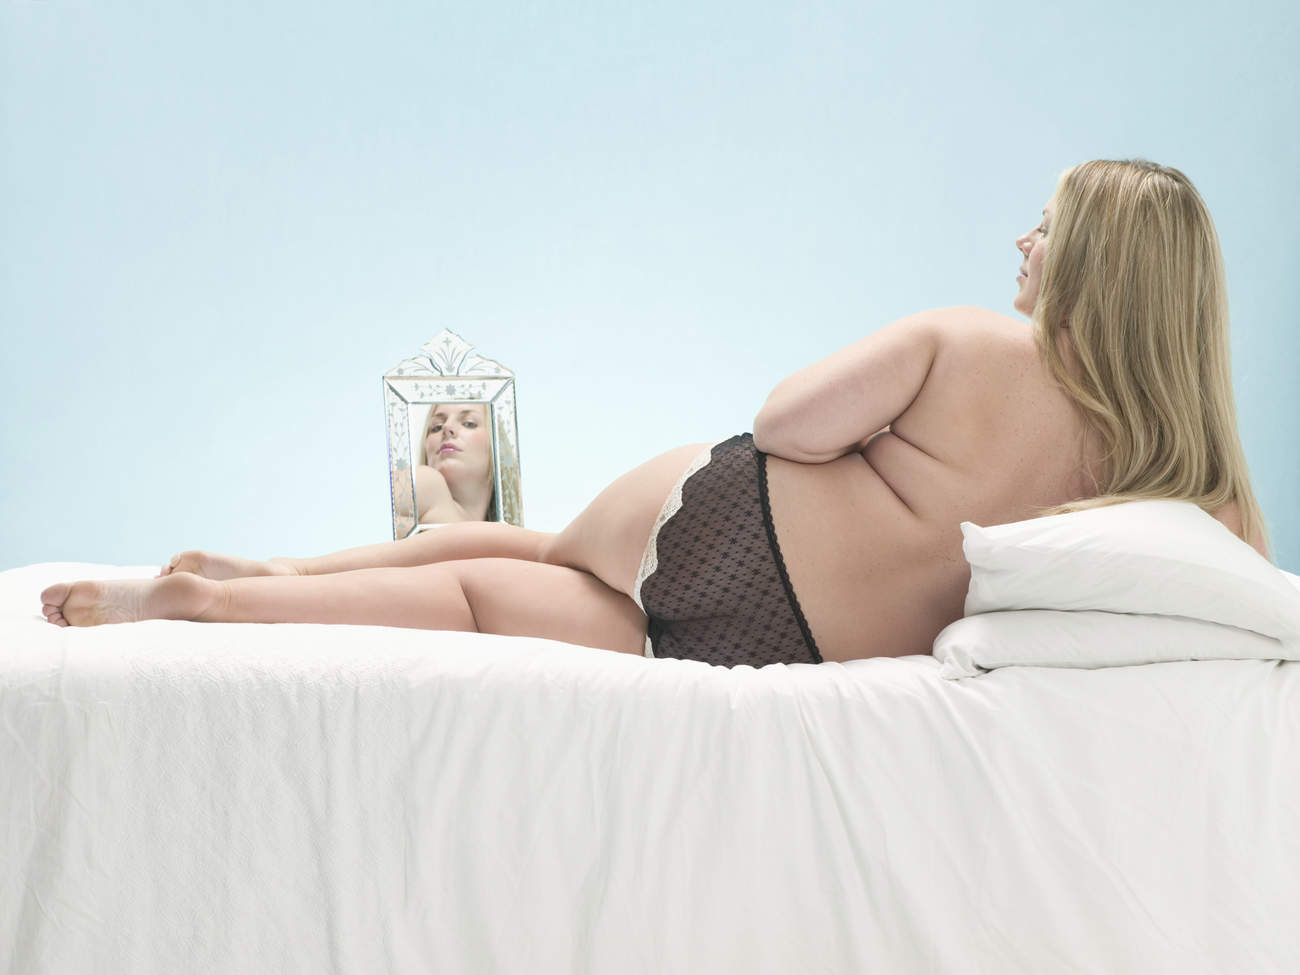 body positive mirror happy fat confidence self image sex sexy underwear